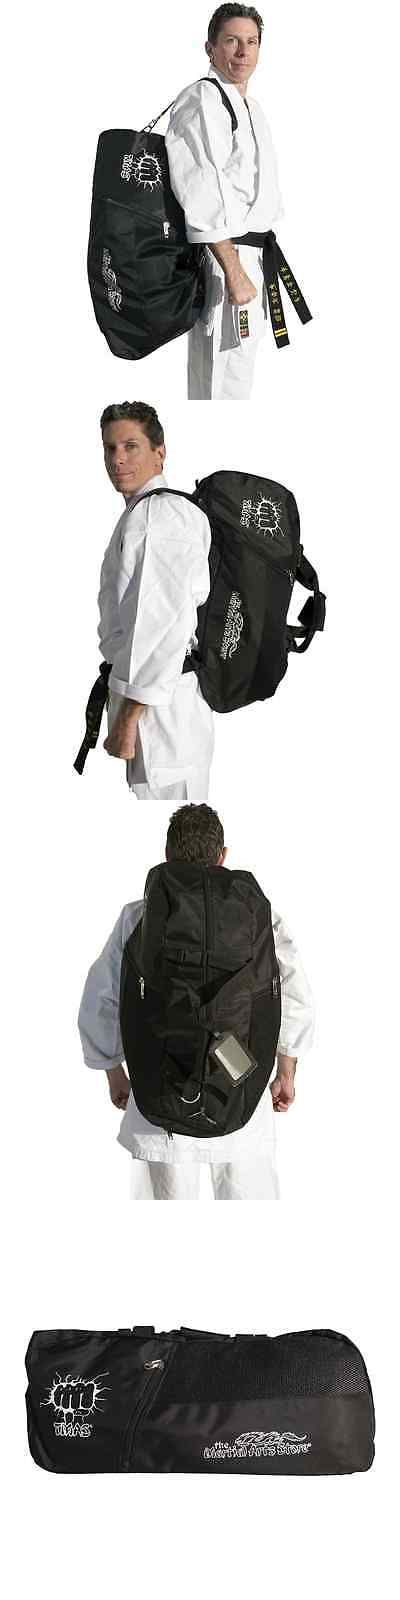 Other Combat Sport Training 179791: Tmas® Martial Arts Equipment Bag -> BUY IT NOW ONLY: $35.95 on eBay!